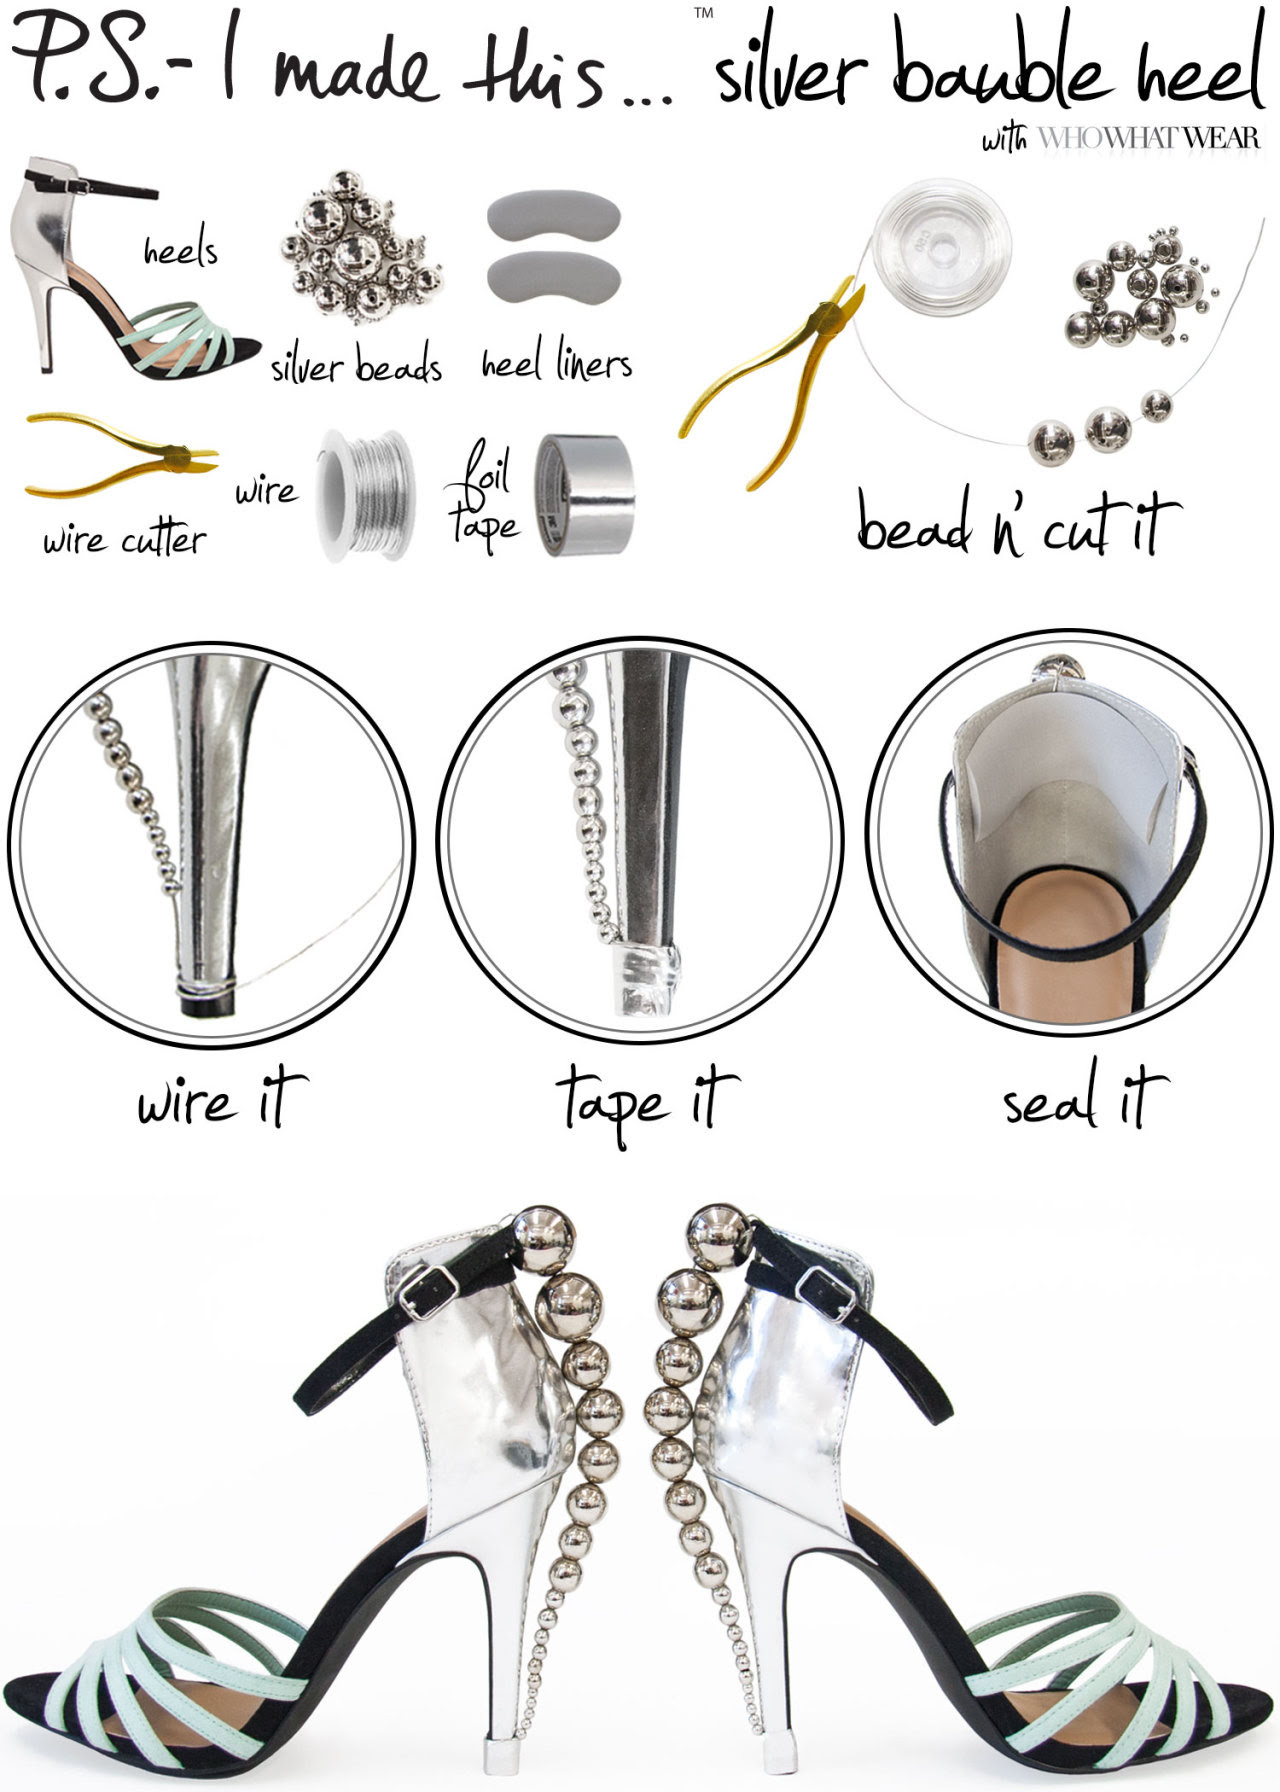 Loby Art &Style: fashion tutorial from the web